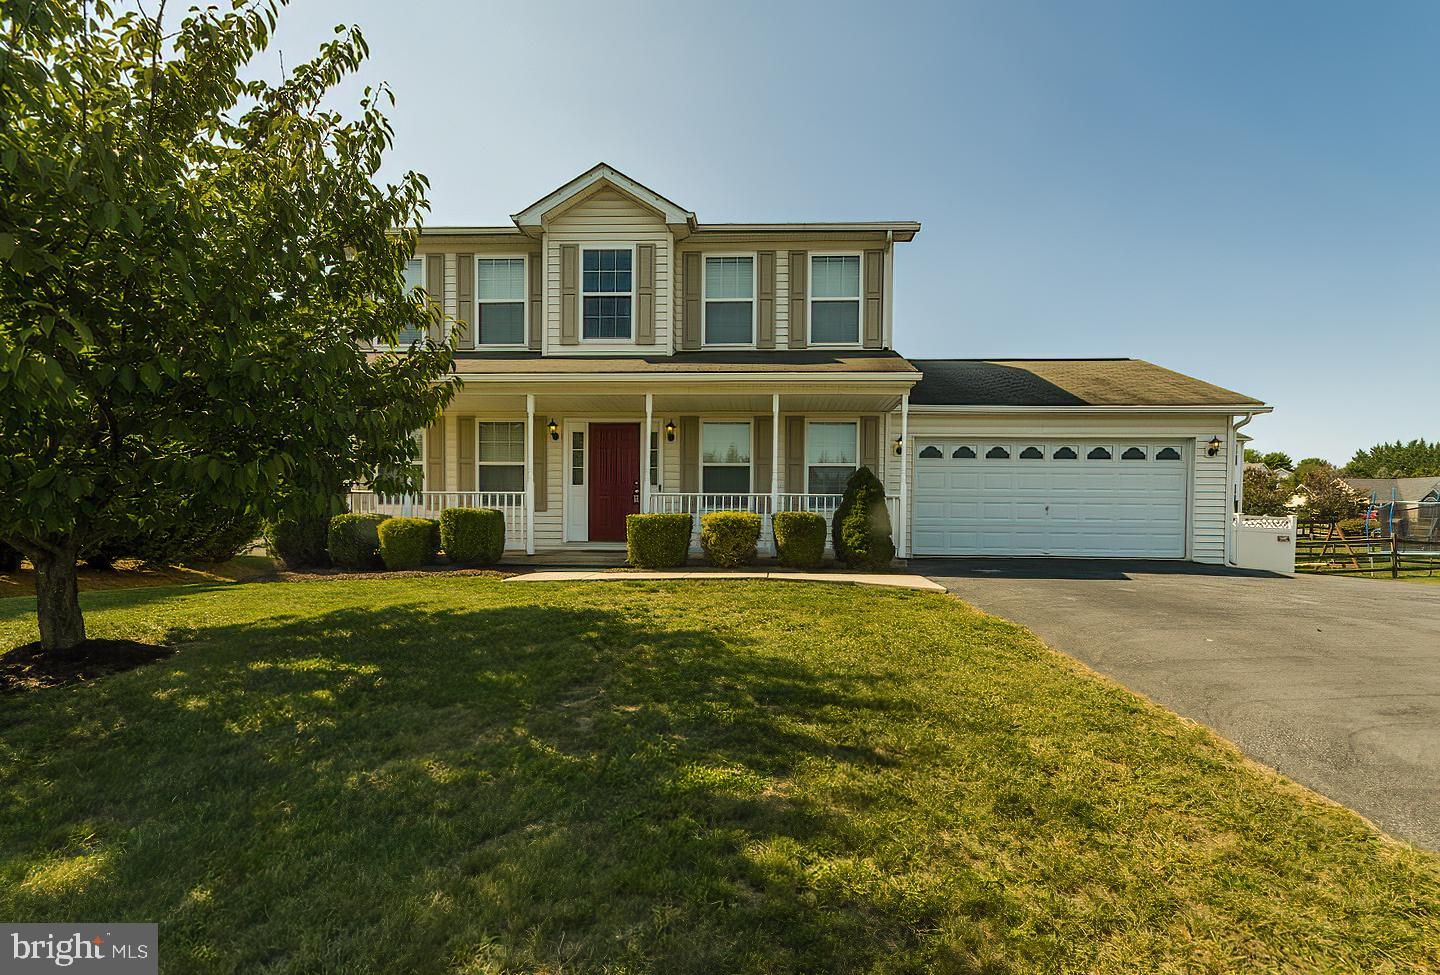 BEAUTIFUL 3 br 3 1/2 bath colonial in sought after Ridgefield Community. This home is a must see.  H